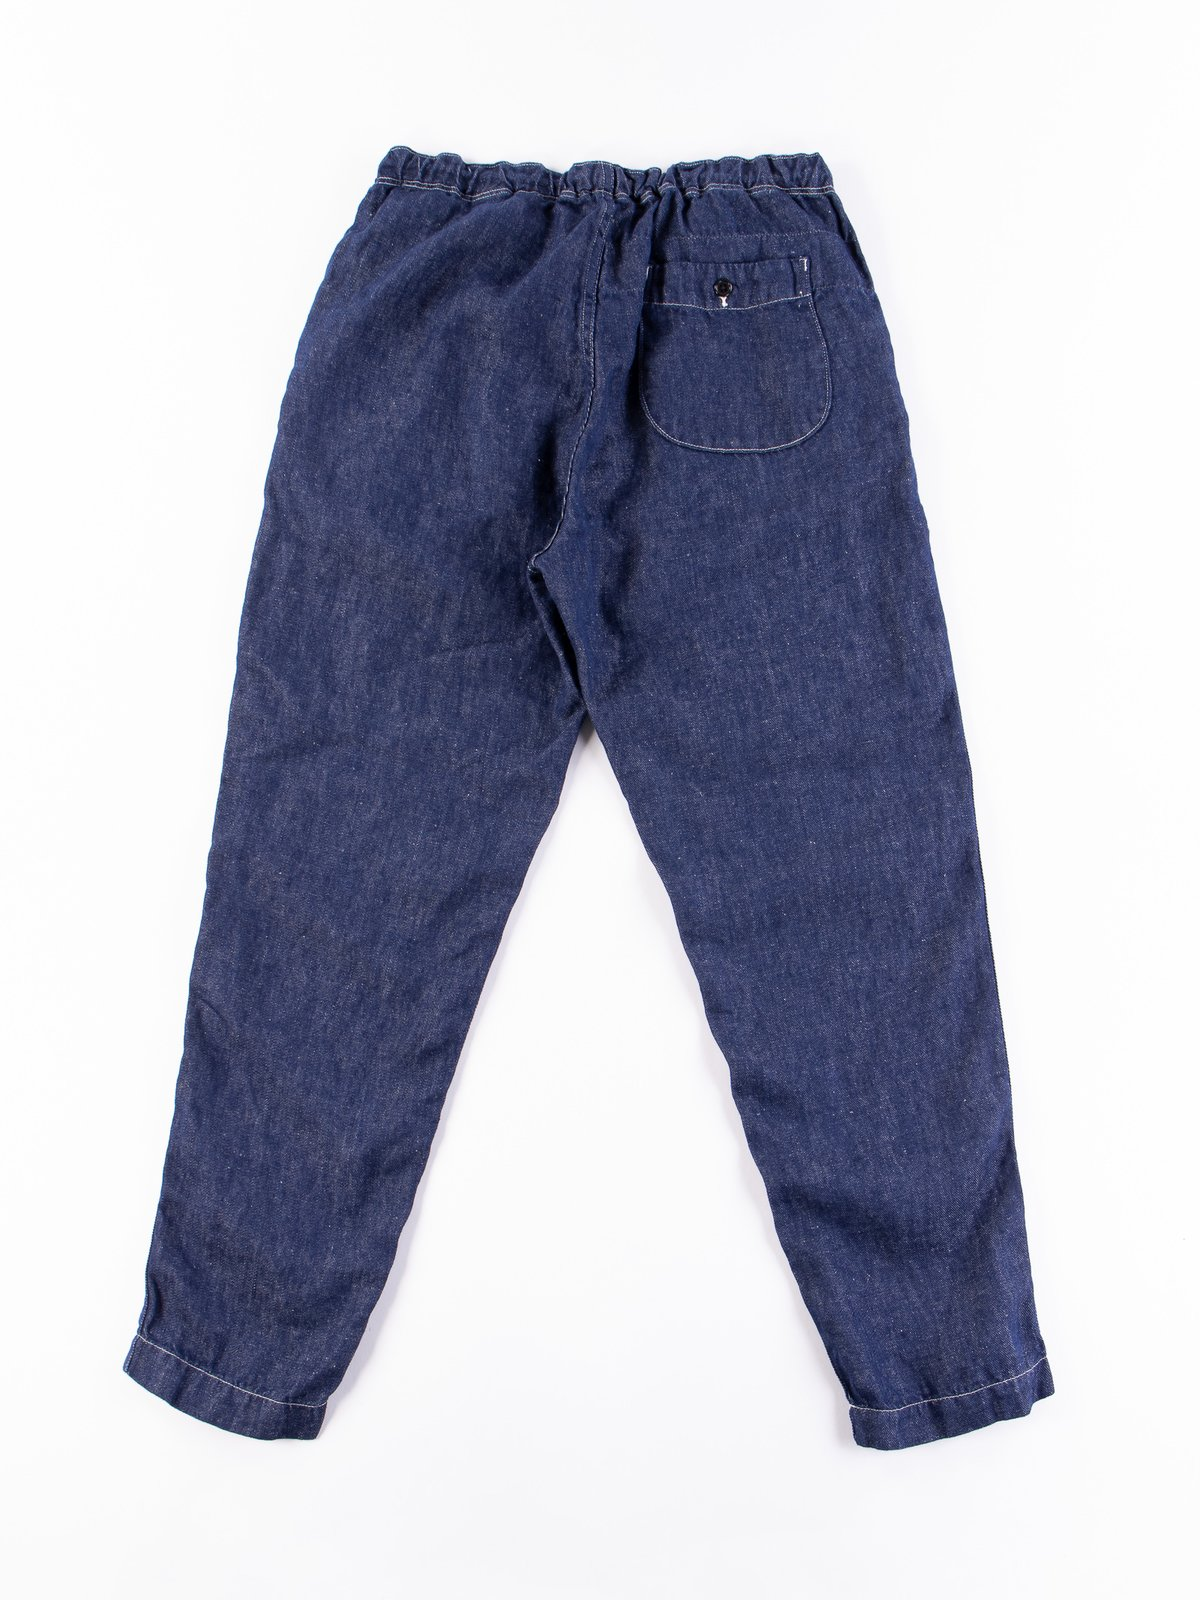 One Wash Denim TBB Mill Pant - Image 8